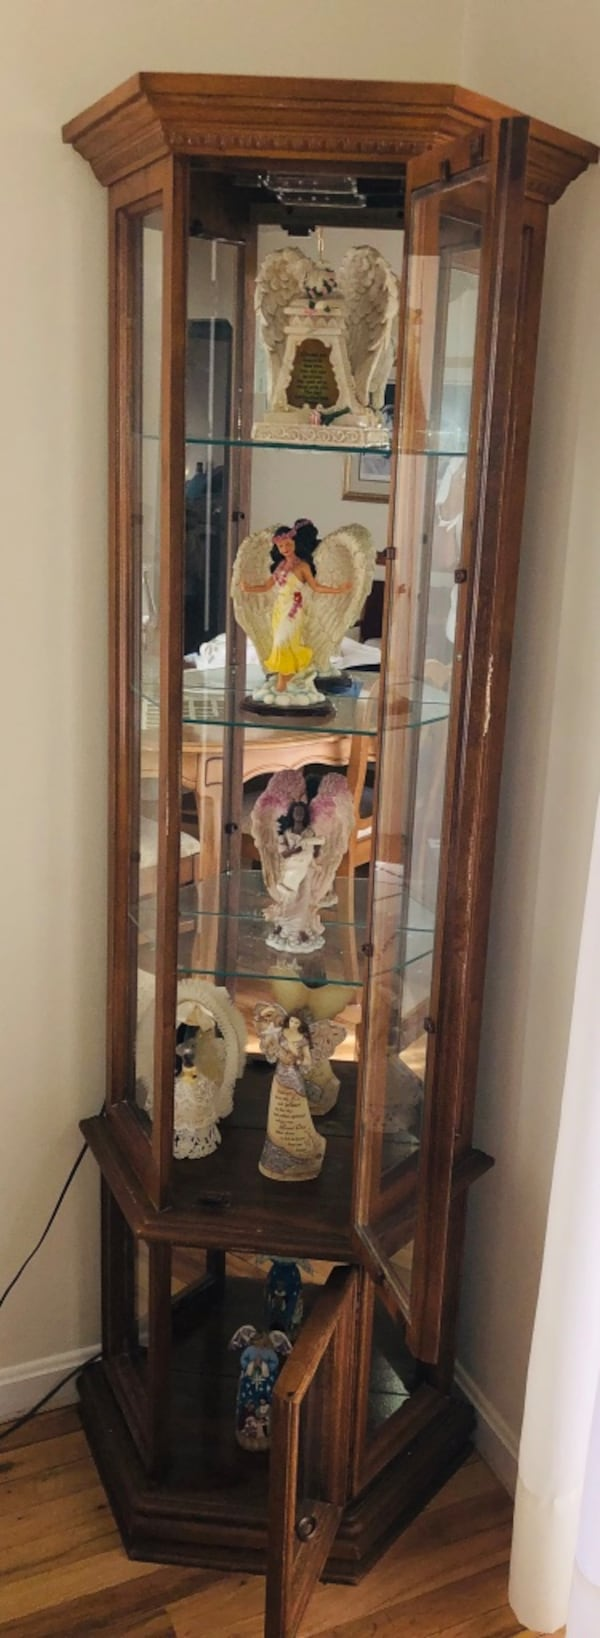 Wooden Curio Cabinet- angels not included. Cash only. You pick up and move. Location Willow Grove, PA 19090 783b62b4-ddc3-45c0-9cc0-330a7cf8ad13